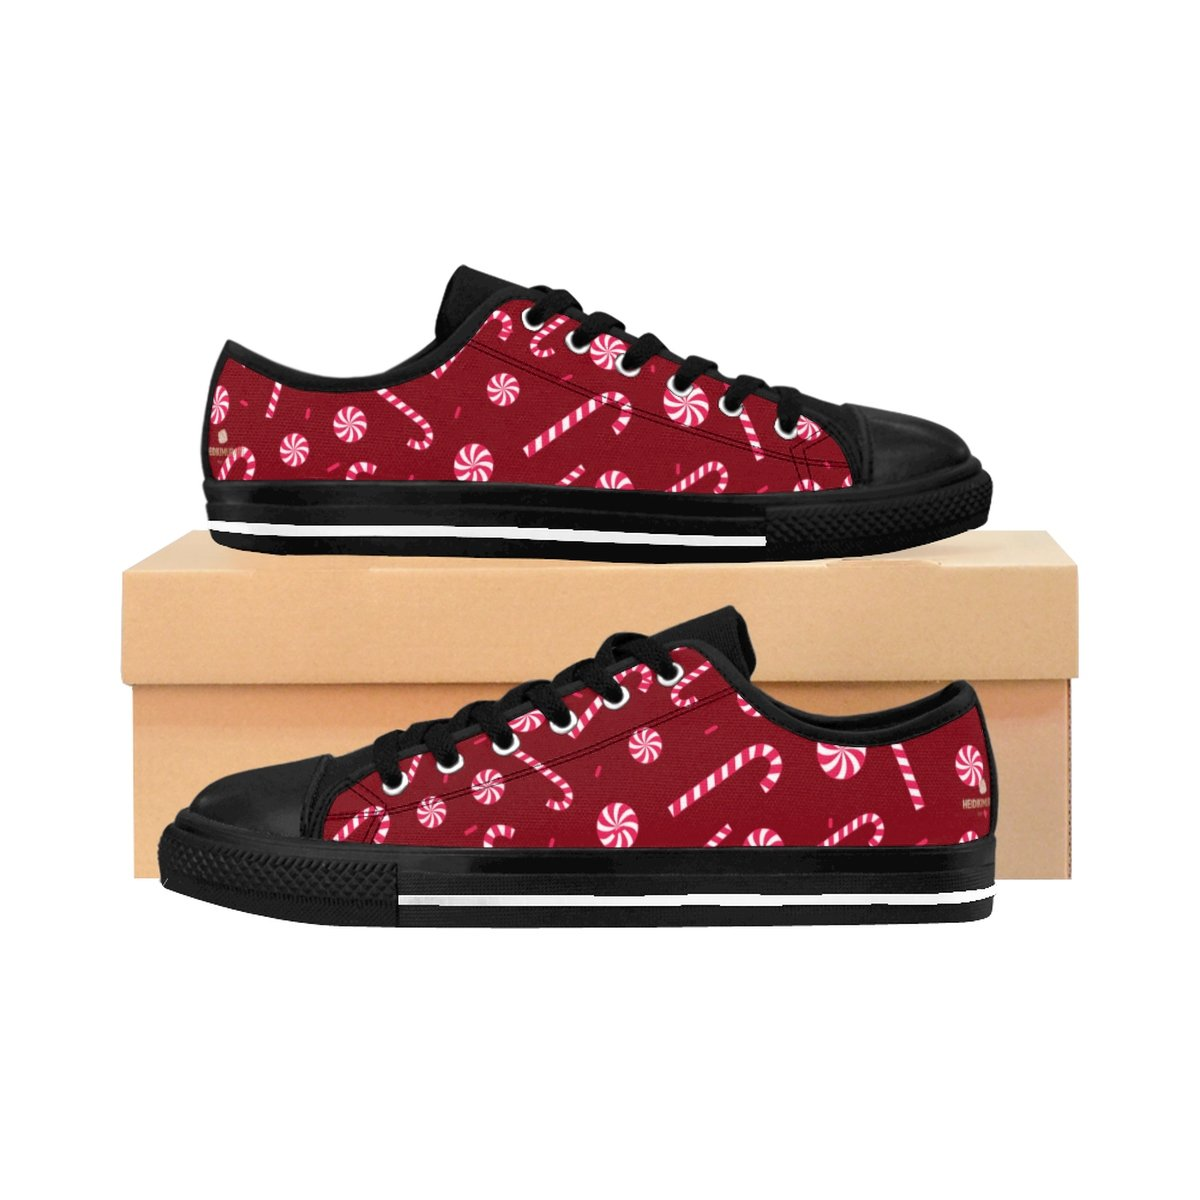 Burgundy Red White Candy Cane Christmas Print Men's Low Top Sneakers Tennis Shoes-Men's Low Top Sneakers-Black-US 9-Heidi Kimura Art LLC